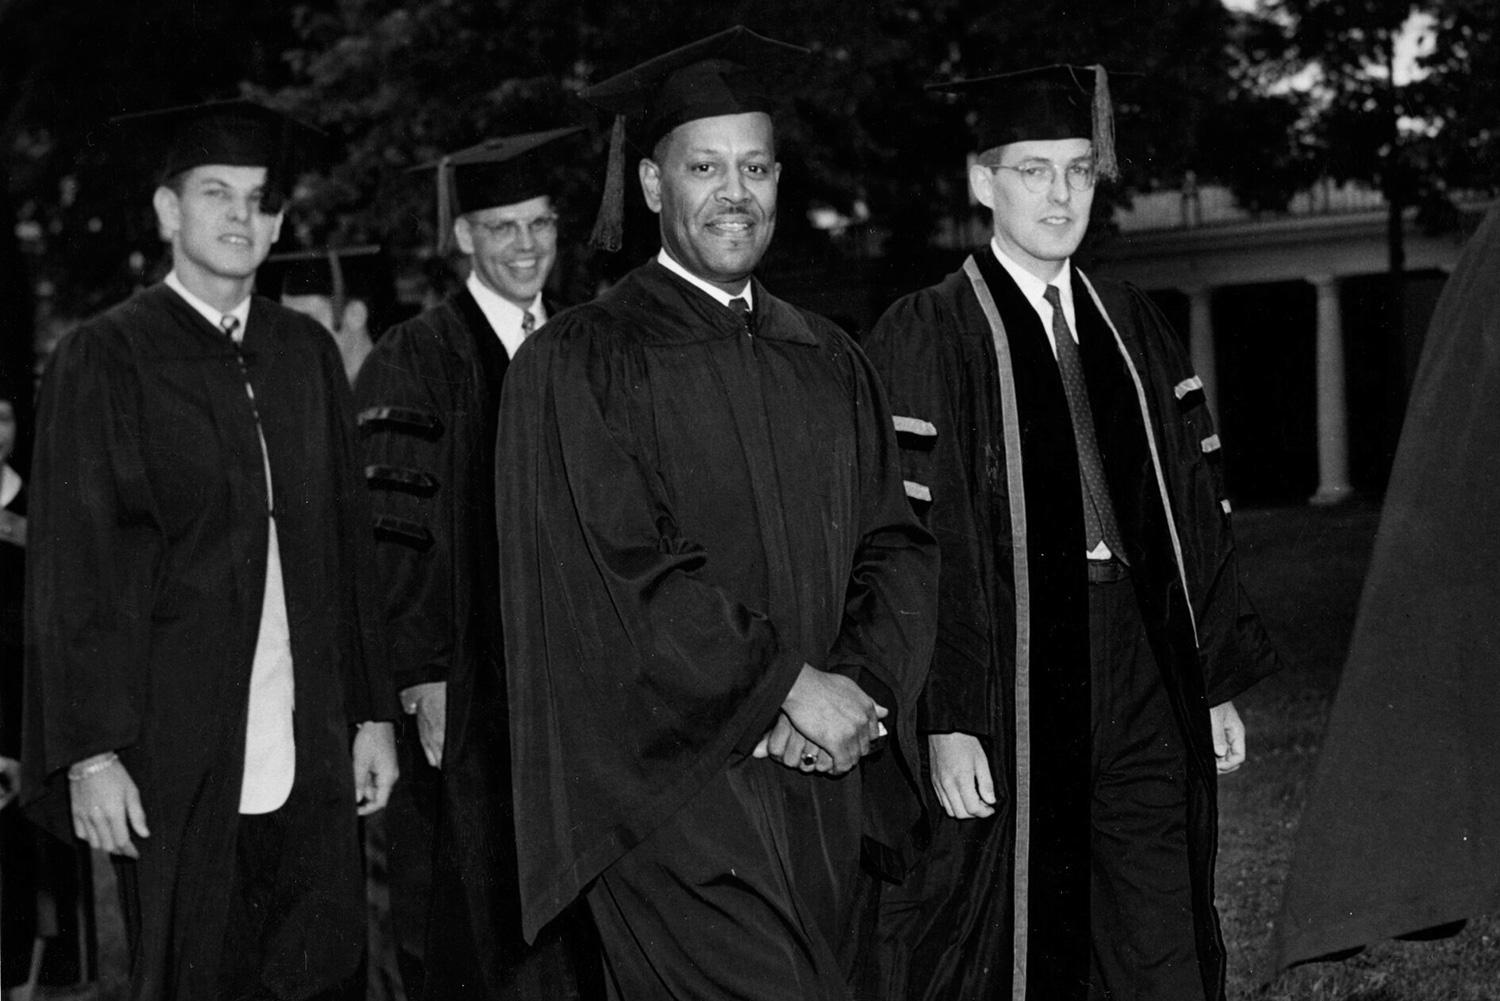 The late Walter F. Ridley earned a Ph.D. from the University's Curry School of Education in 1953, long before Office of African-American Affairs was established.